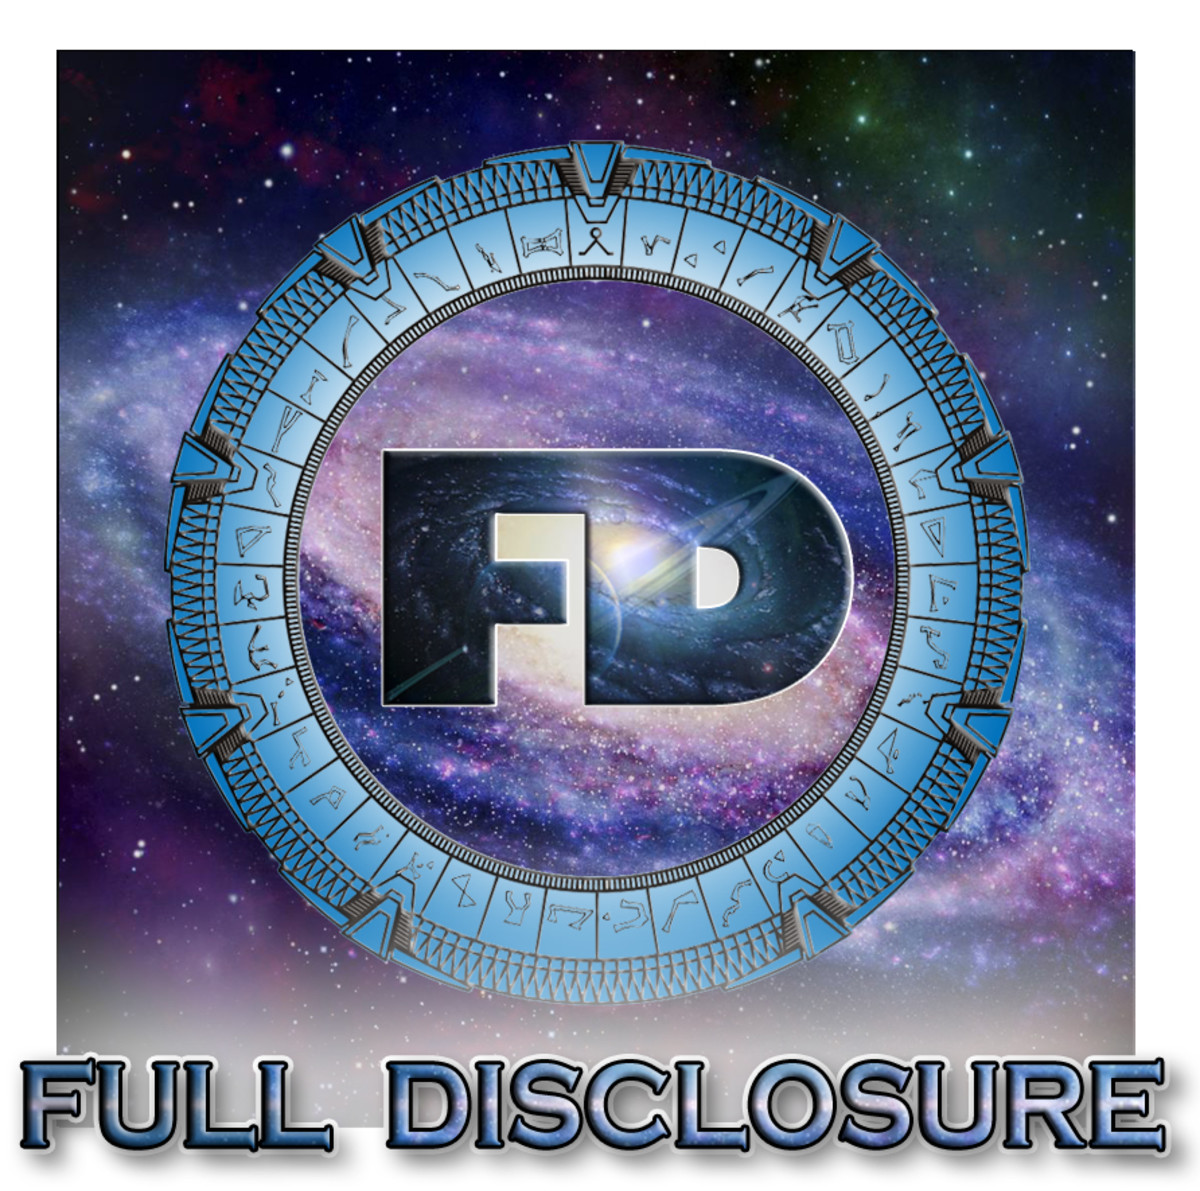 Full Disclosure will literally change the way we live overnight and evolve humanity to a level that we can put forth the effort to Ascend.